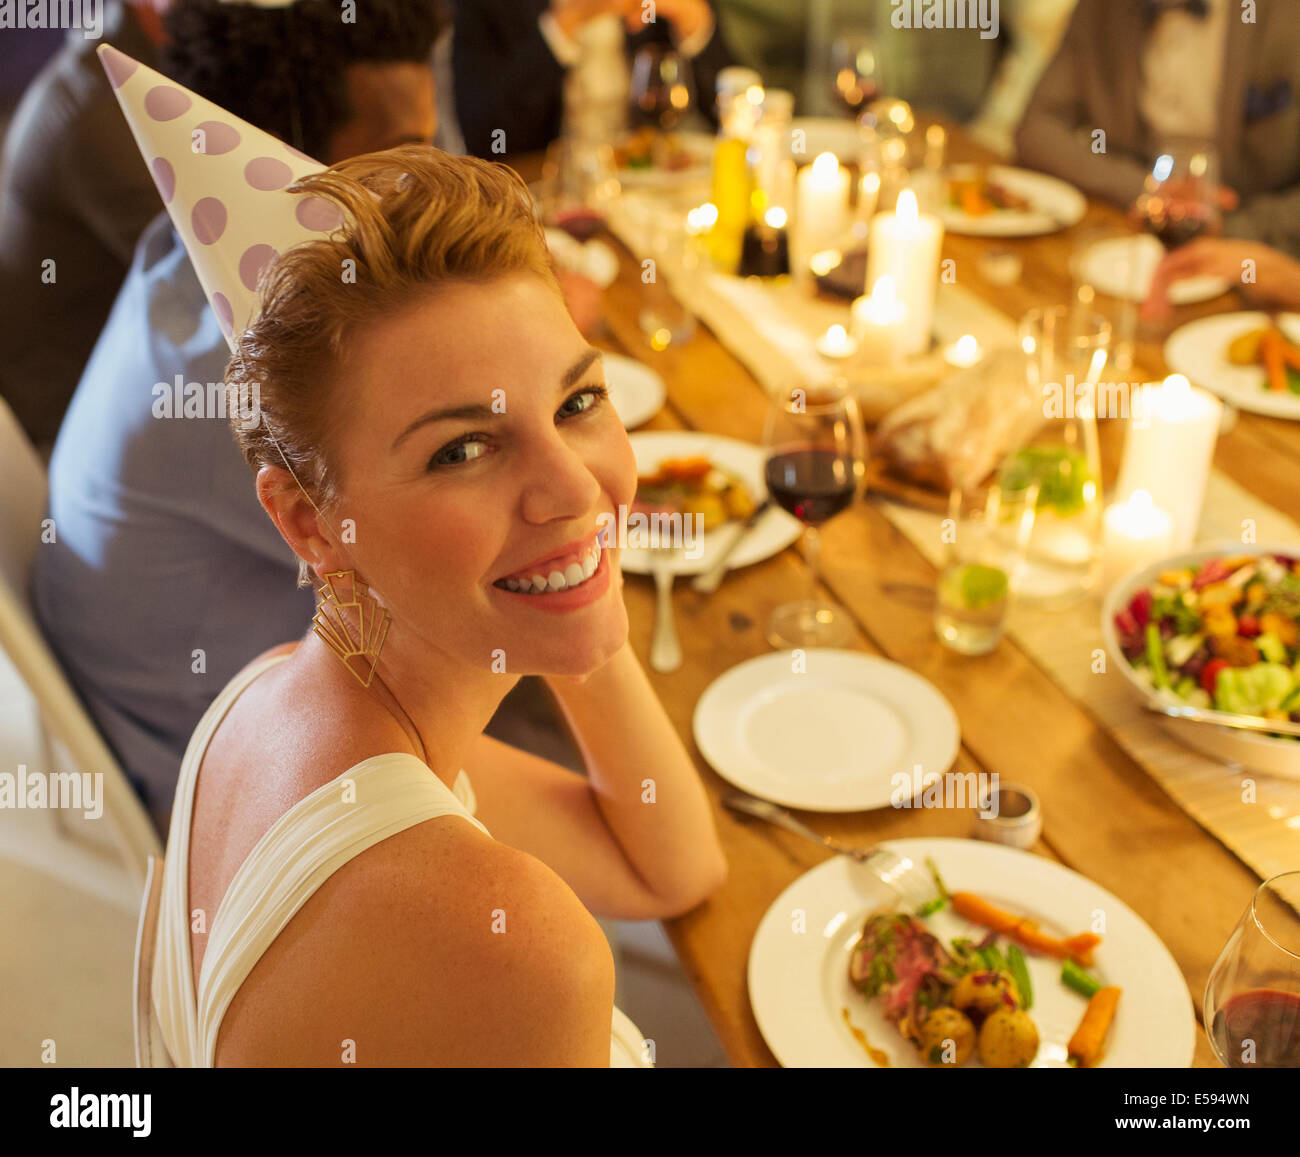 Woman smiling at Birthday party Photo Stock